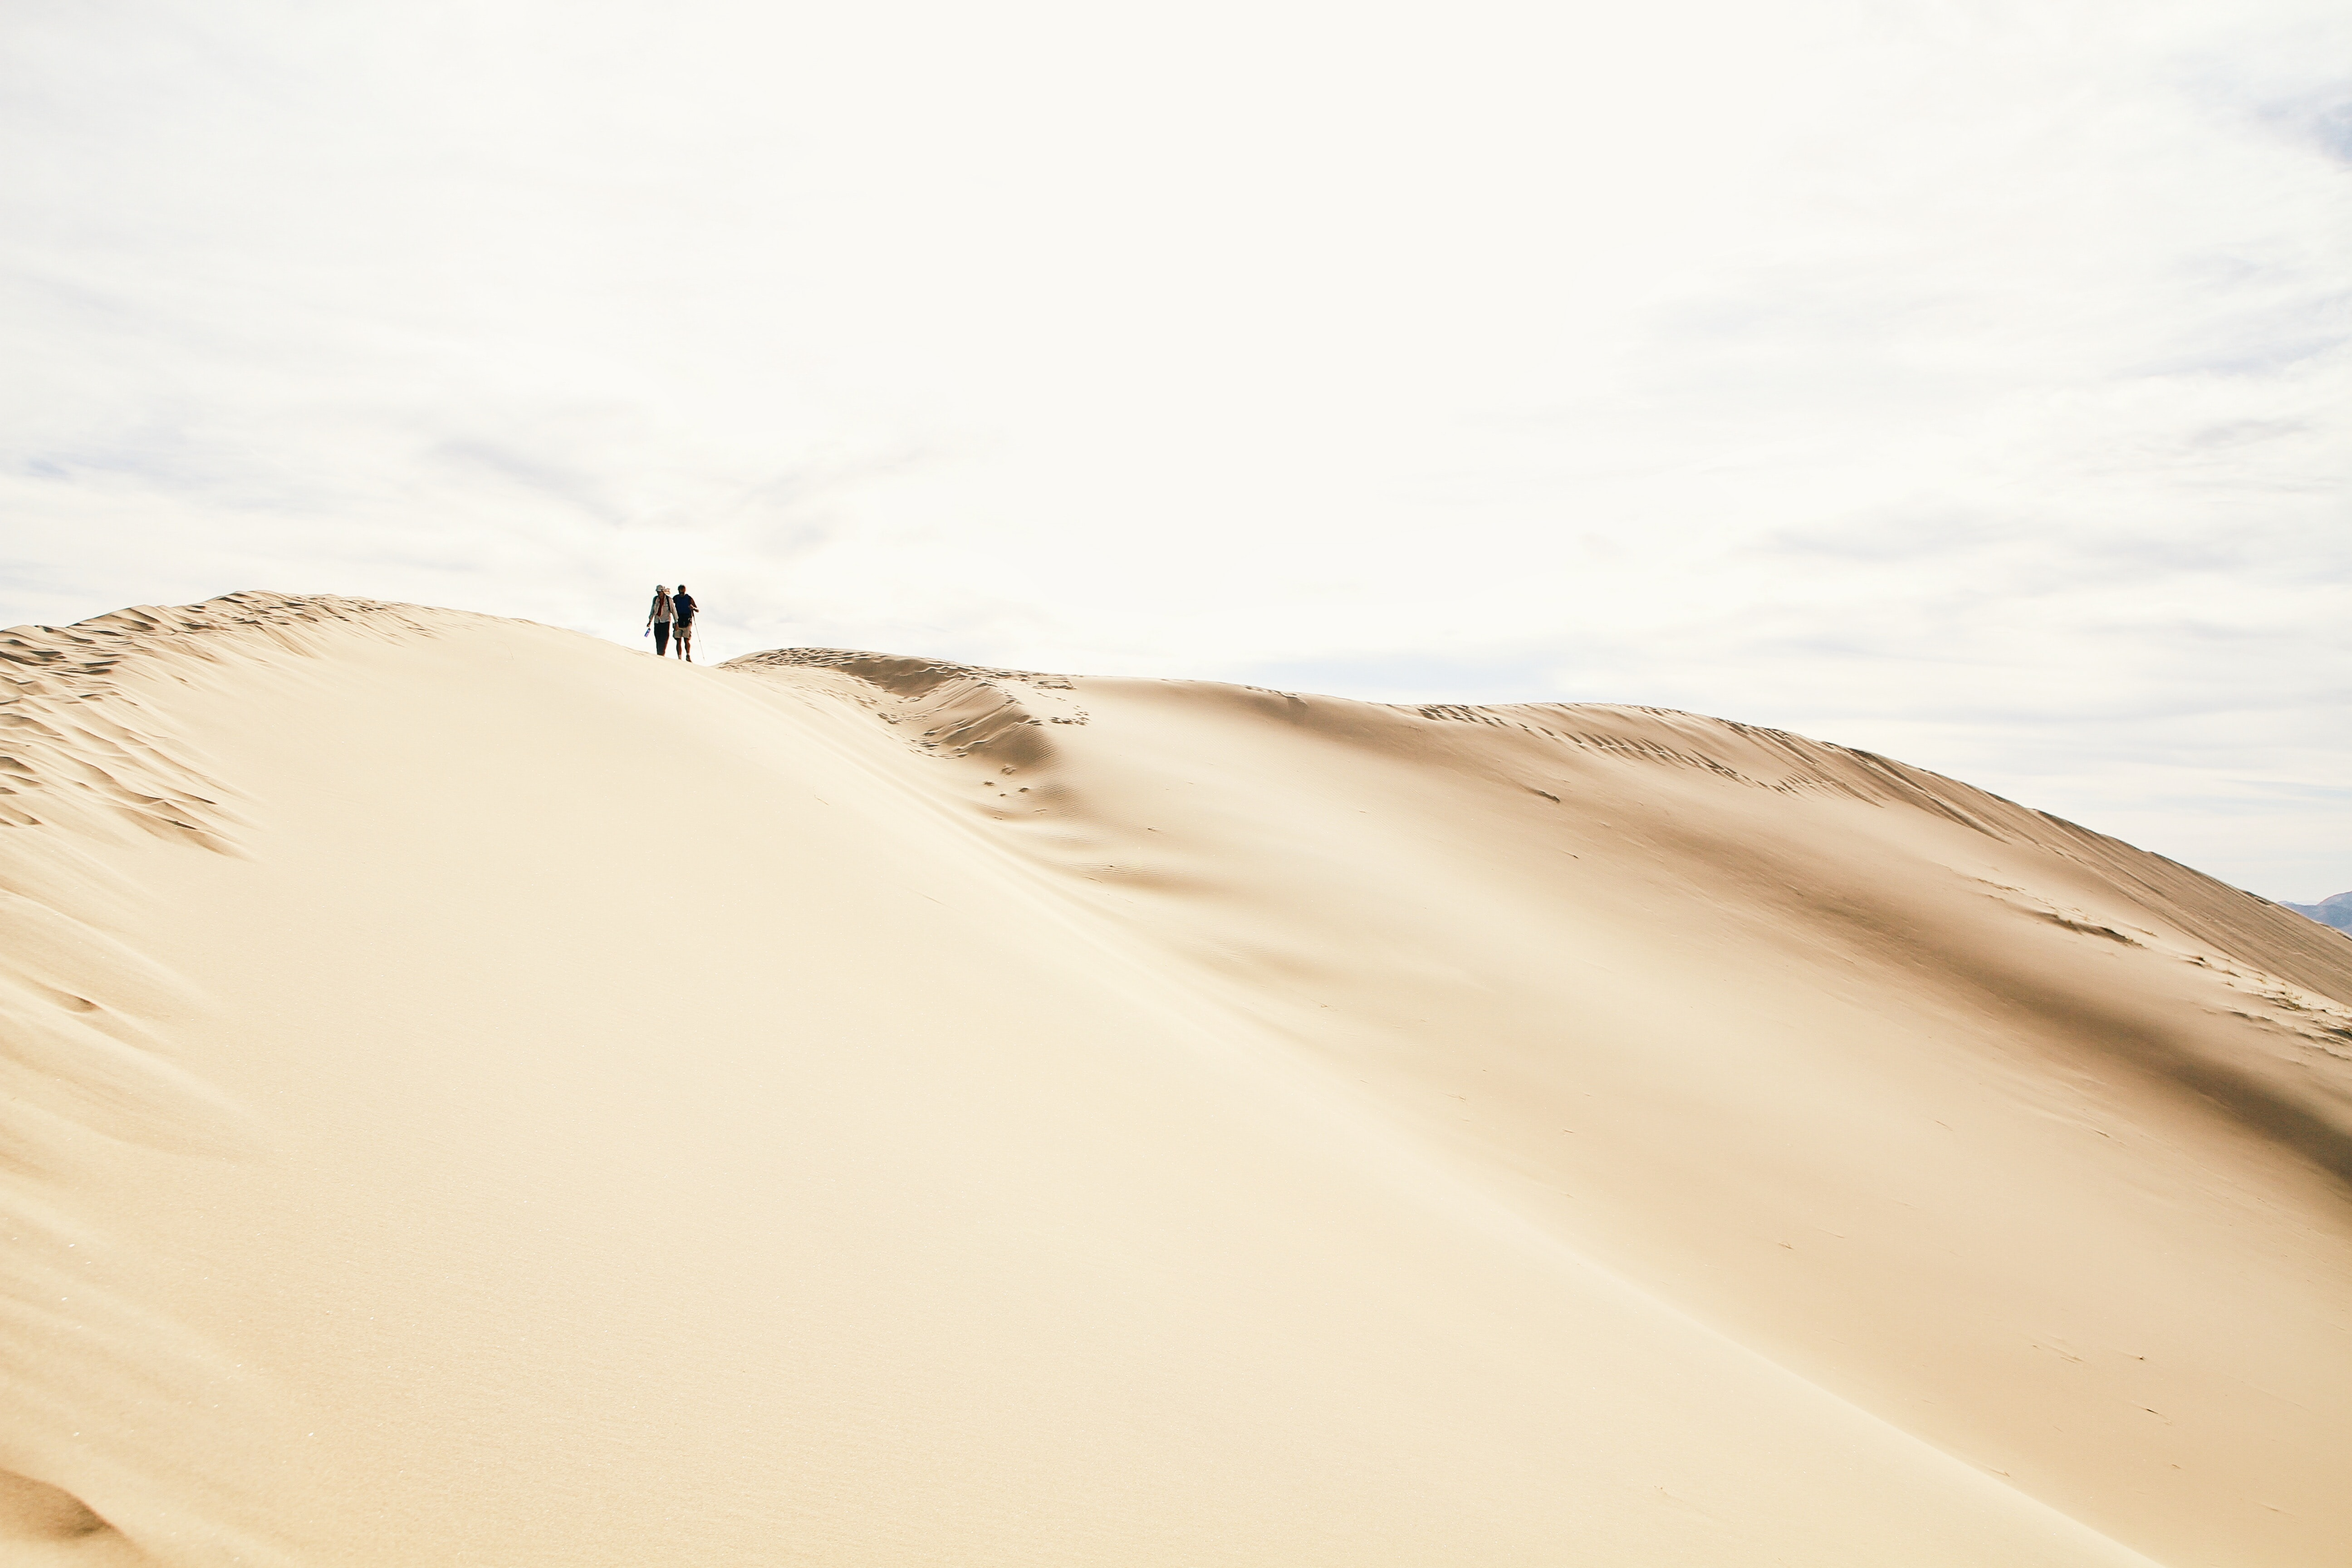 silouette of two people standing on sand under clear sky